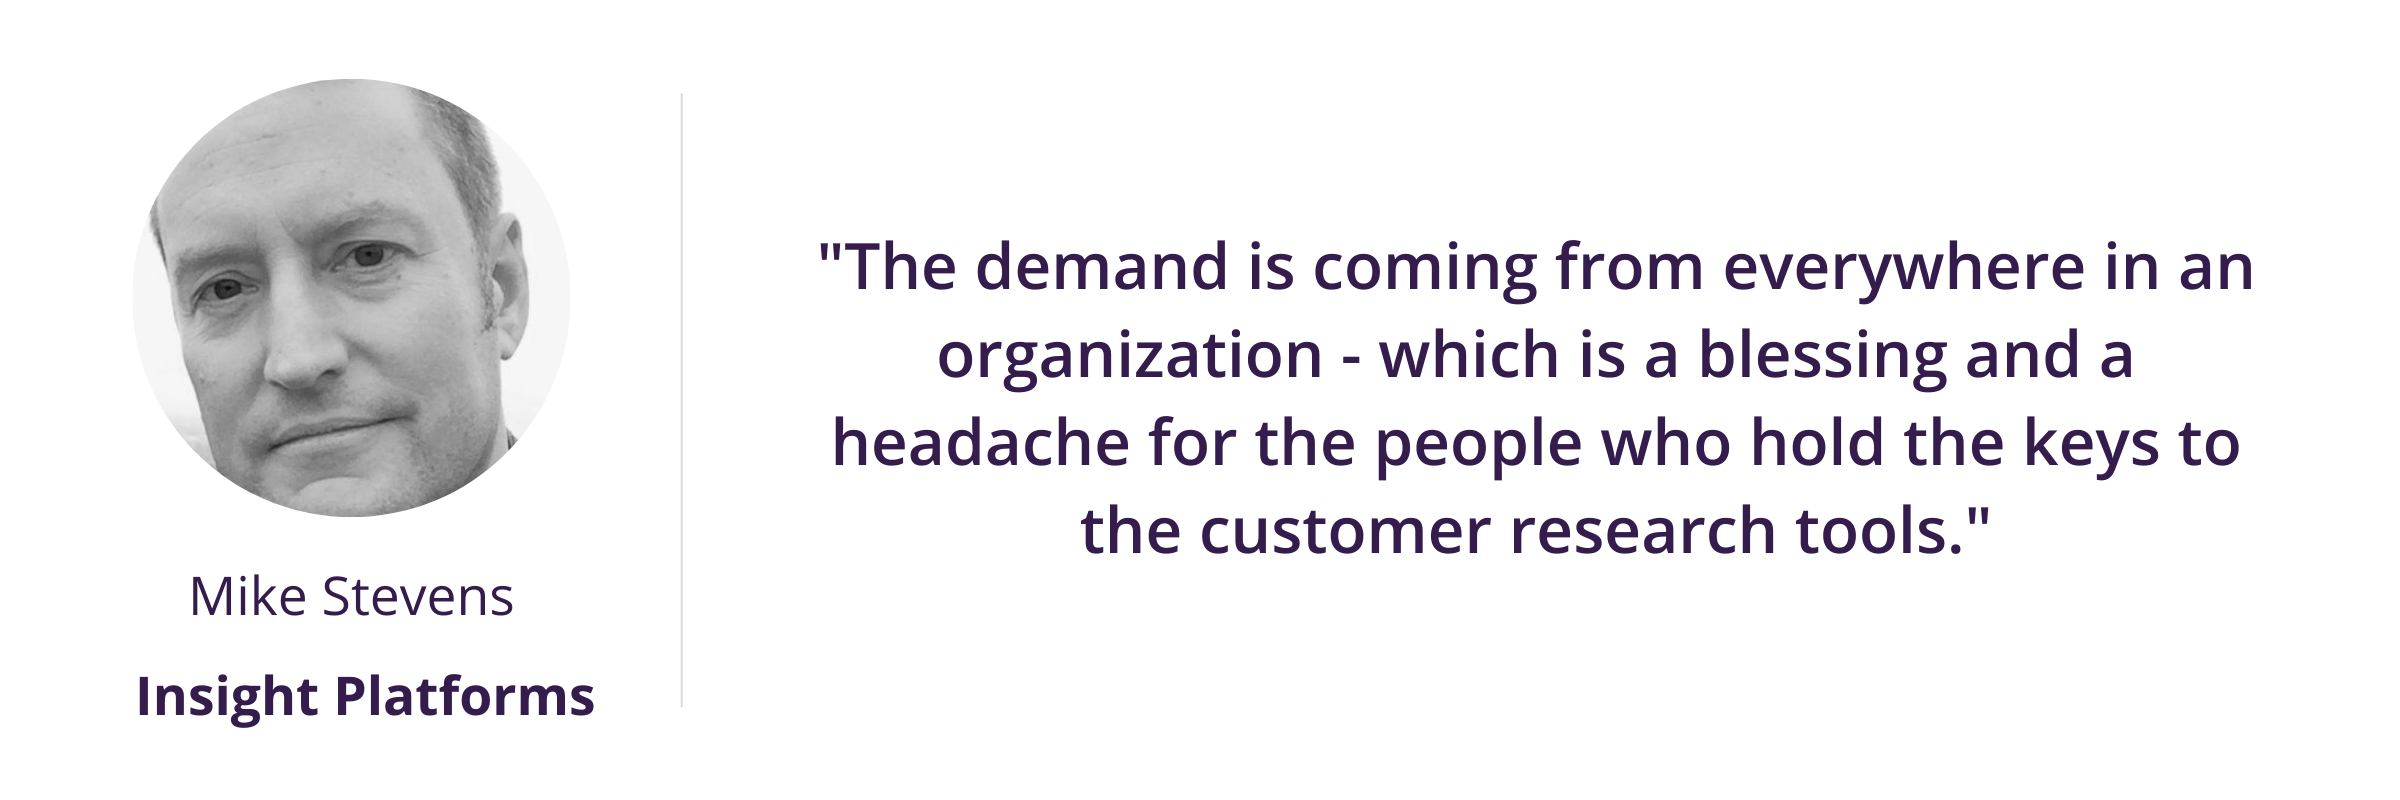 """""""The demand is coming from everywhere in an organization - which is a blessing and a headache for the people who hold the keys to the customer research tools."""""""